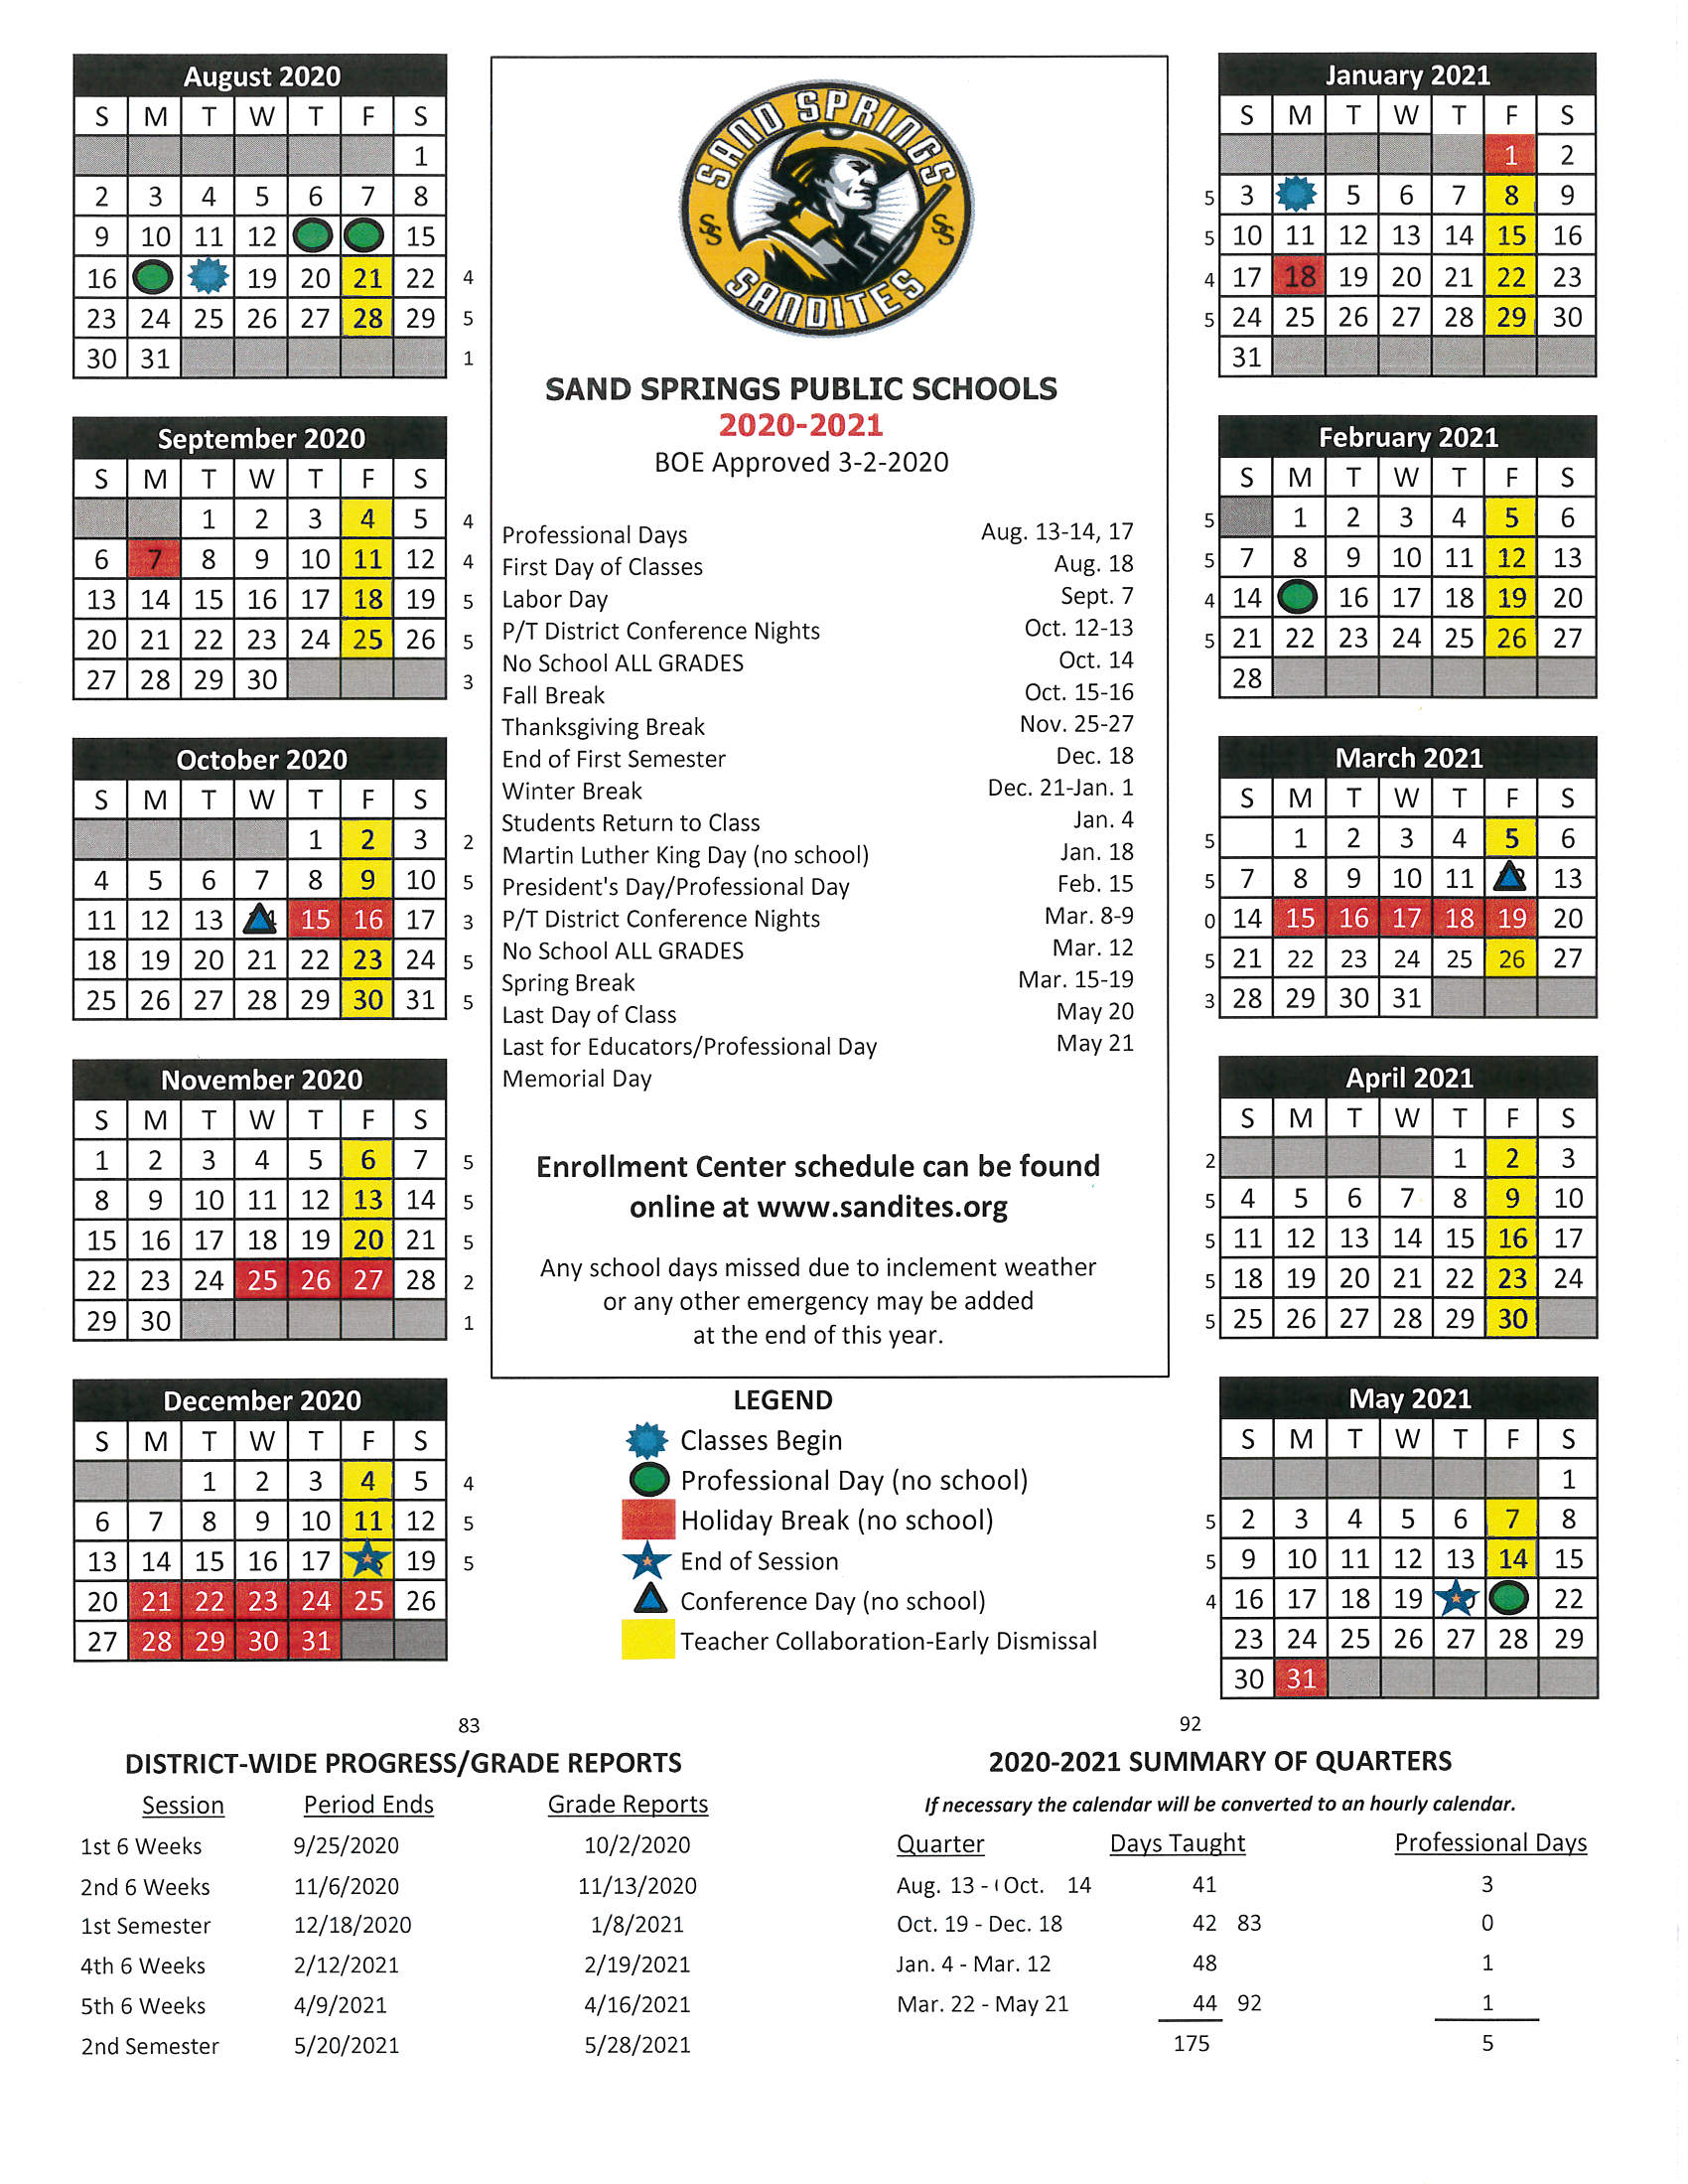 Sand Springs Public Schools Throughout University Of Tulsa 2021 Calendar